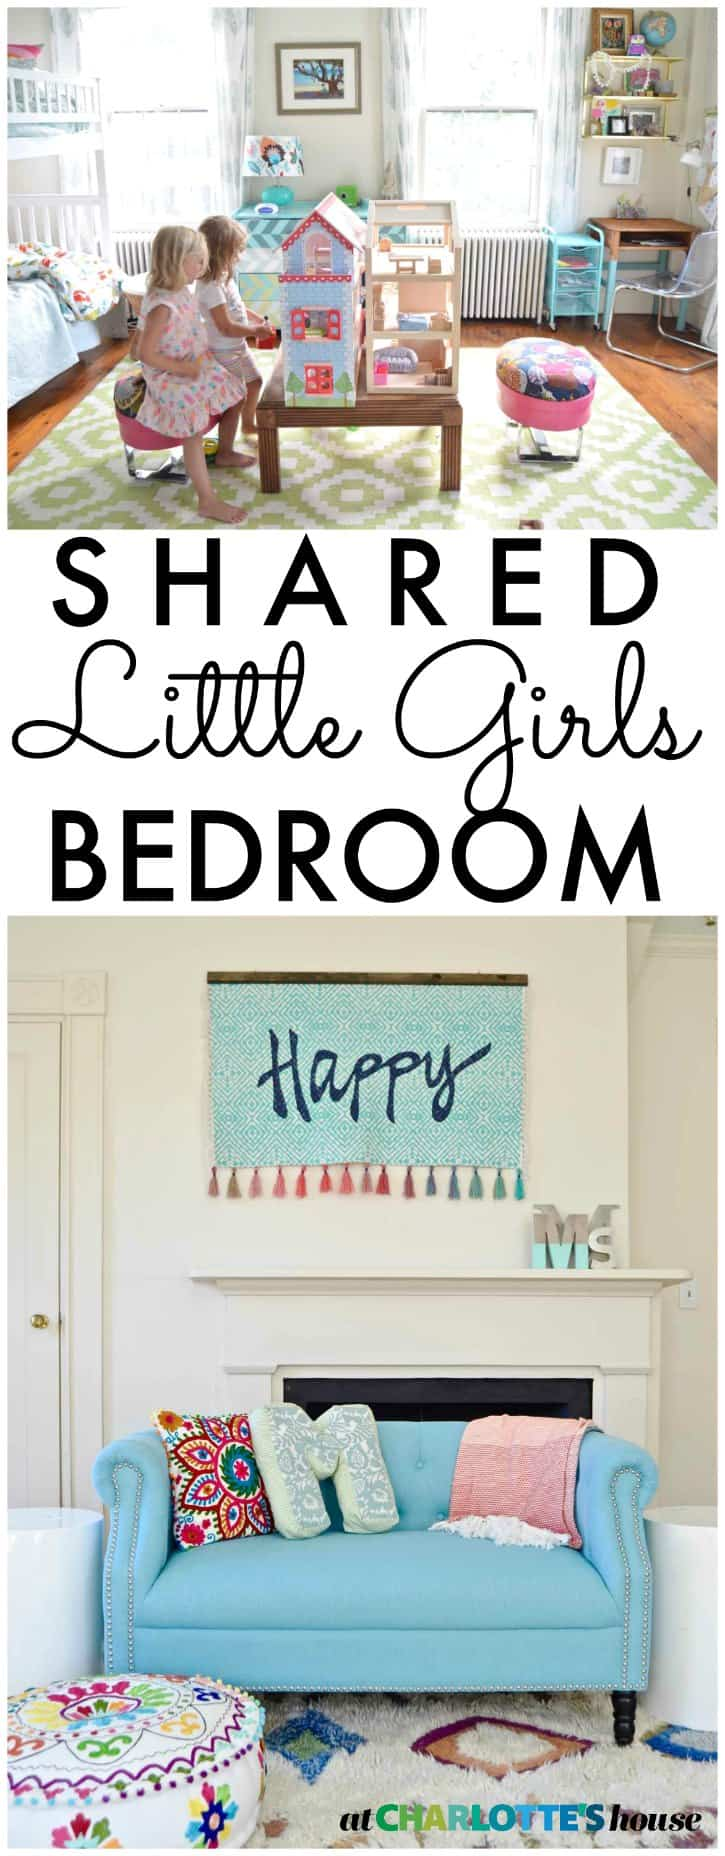 This bedroom is just what a little girl would ask for: rainbows and doll houses and their name in lights!